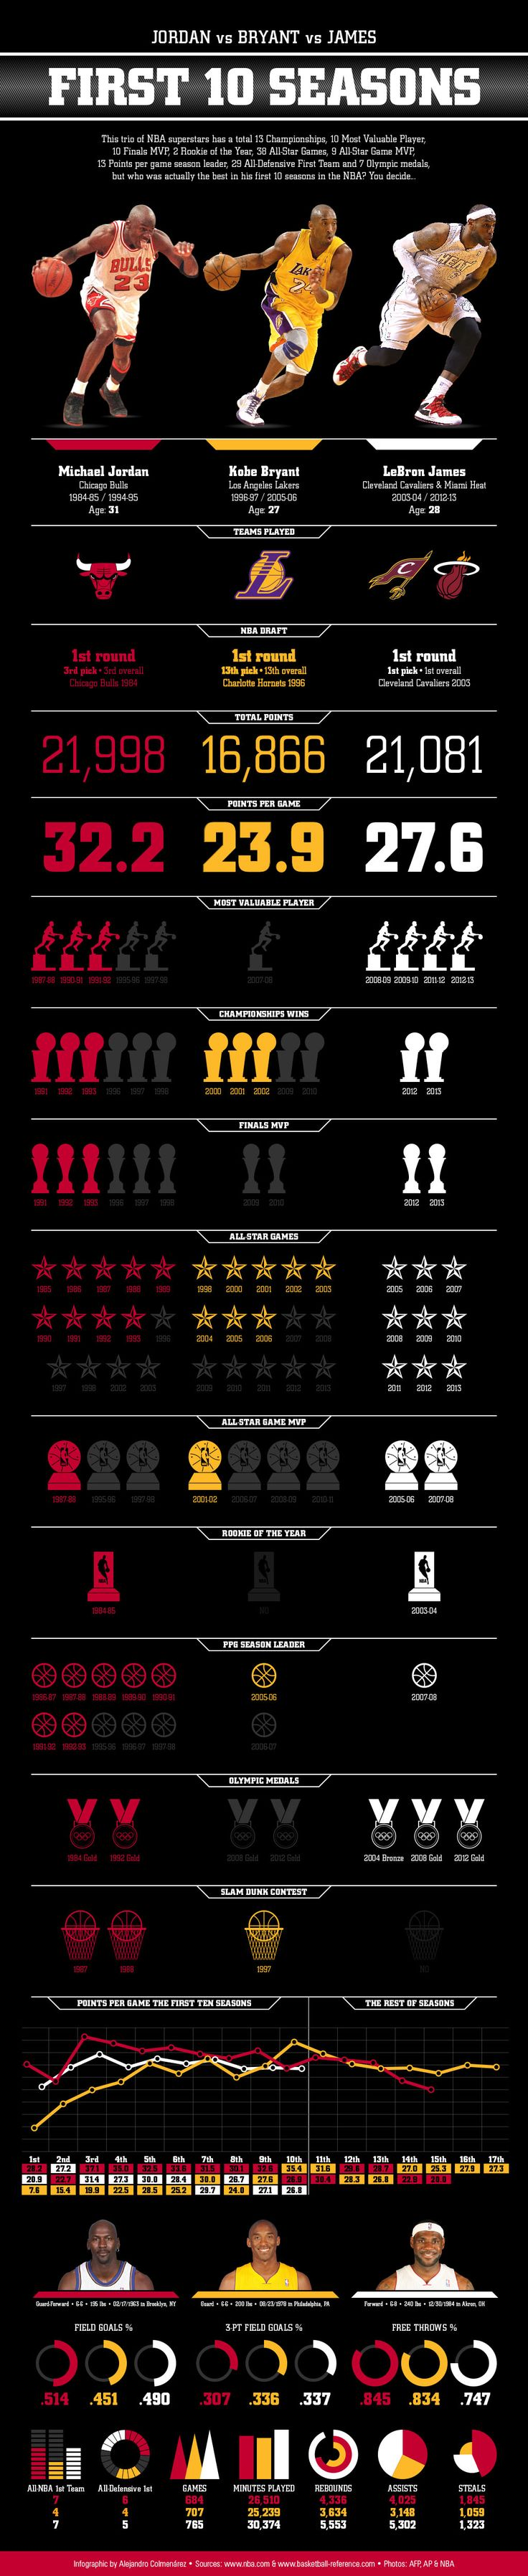 INFOGRAPHIC: Comparing Michael Jordan, Kobe Bryant and LeBron James After Their First 10 Seasons - The Whistle